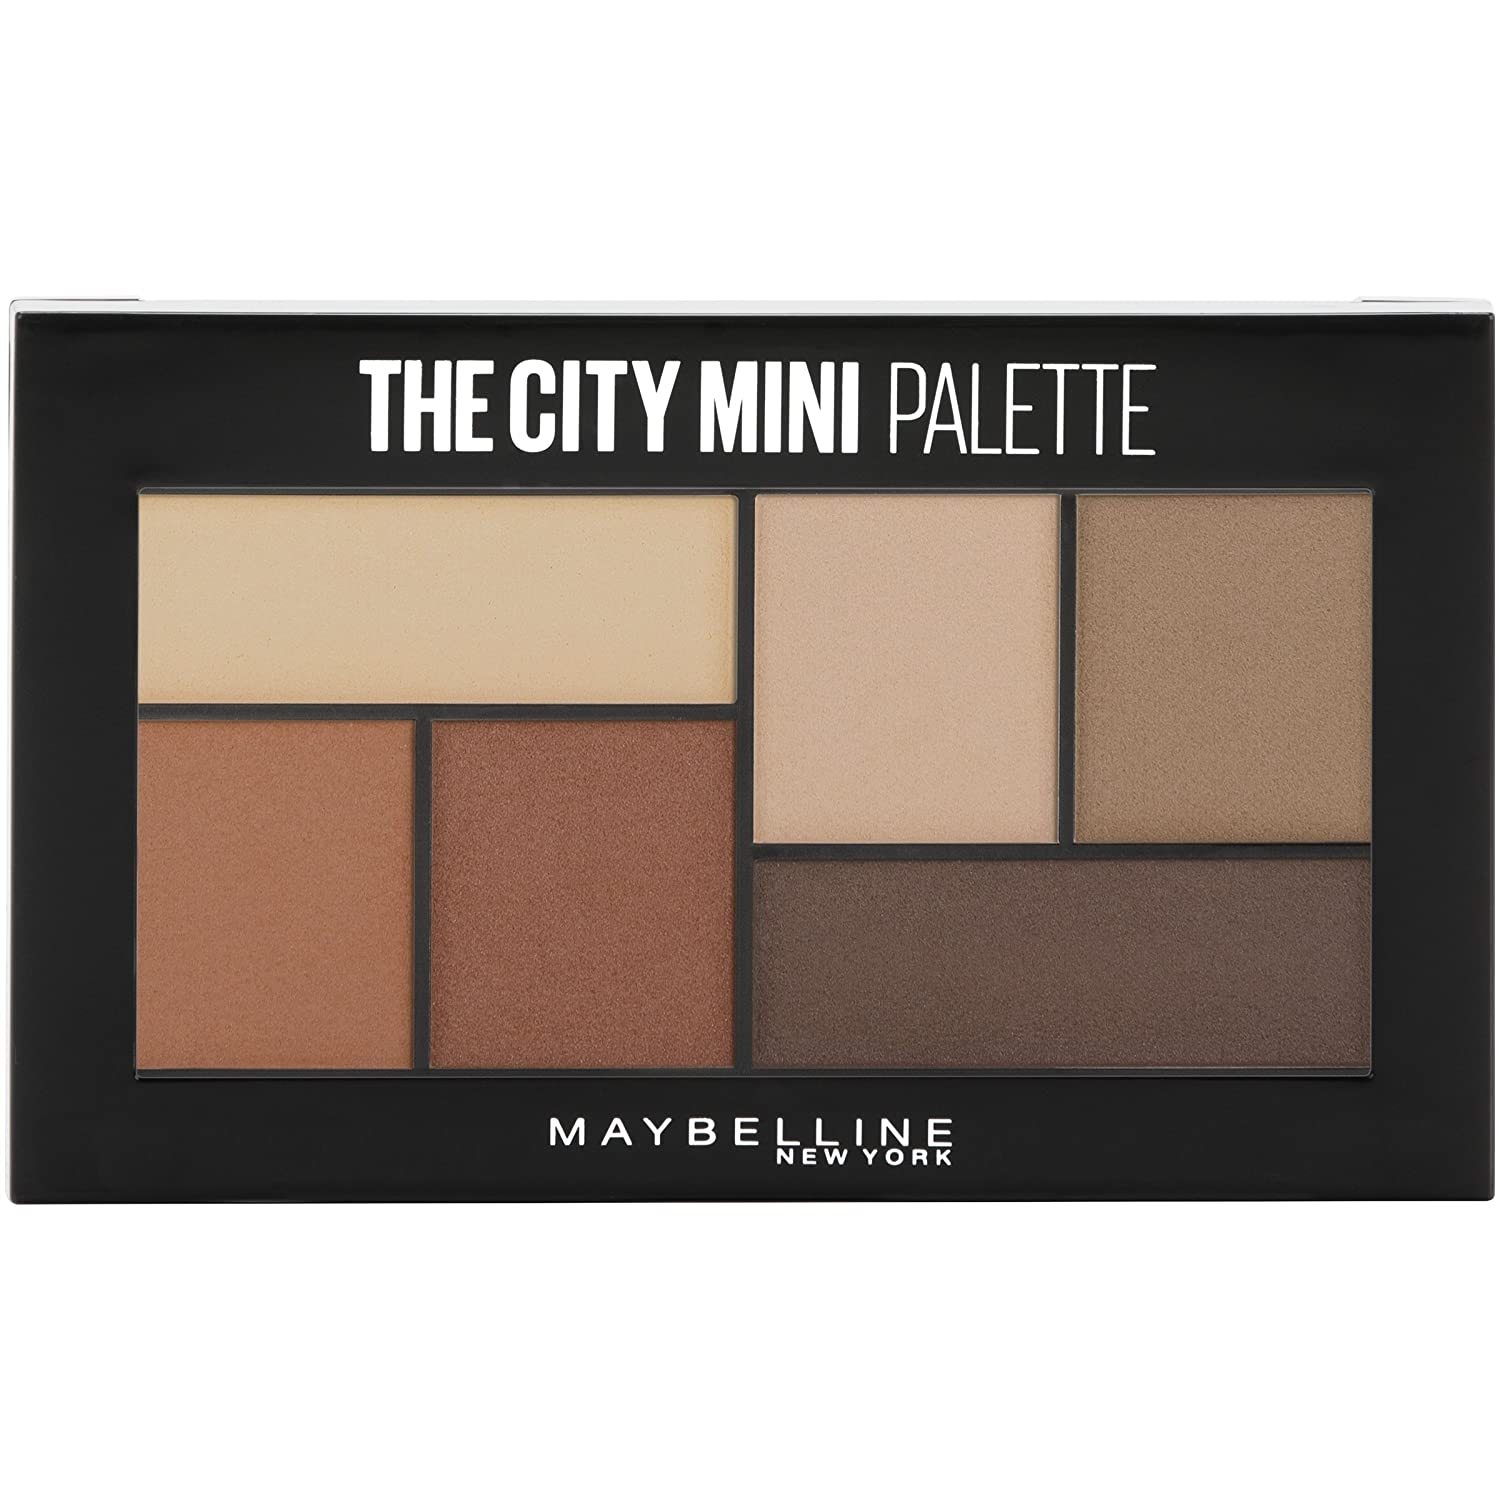 Maybelline Makeup The City Mini Eyeshadow Palette, Downtown Sunrise Eyeshadow, 0.14 oz Maybelline New York K2417100